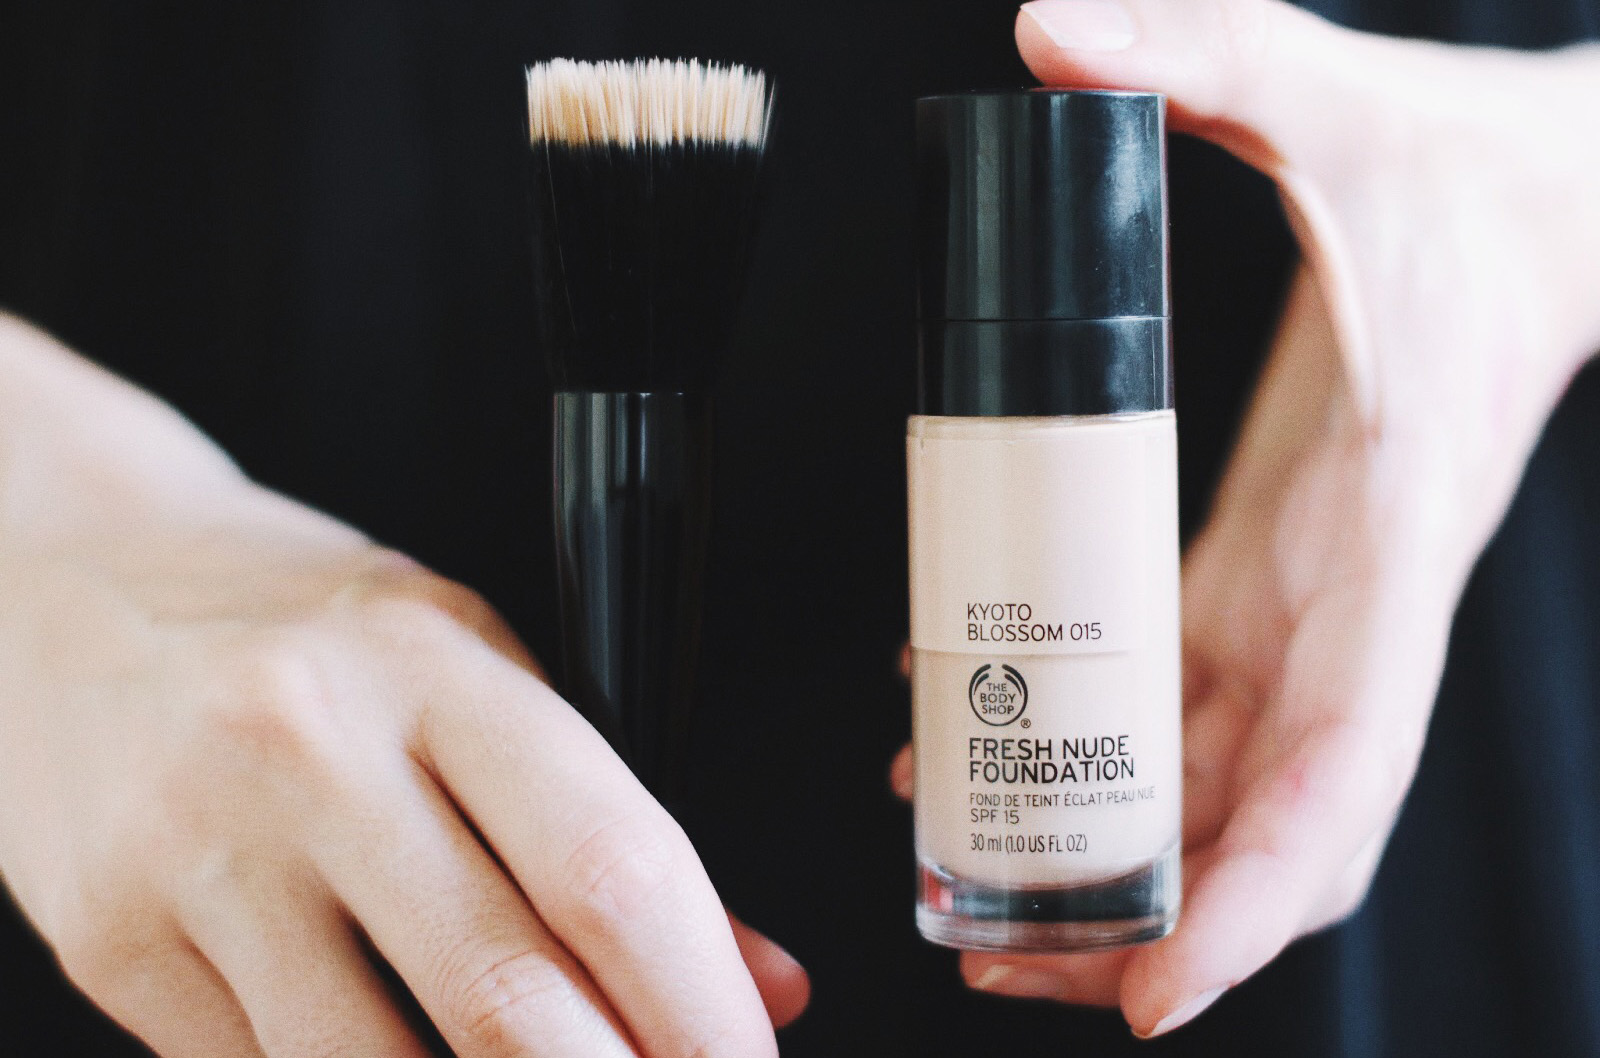 the body shop fresh nude foundation fond de teint avis test